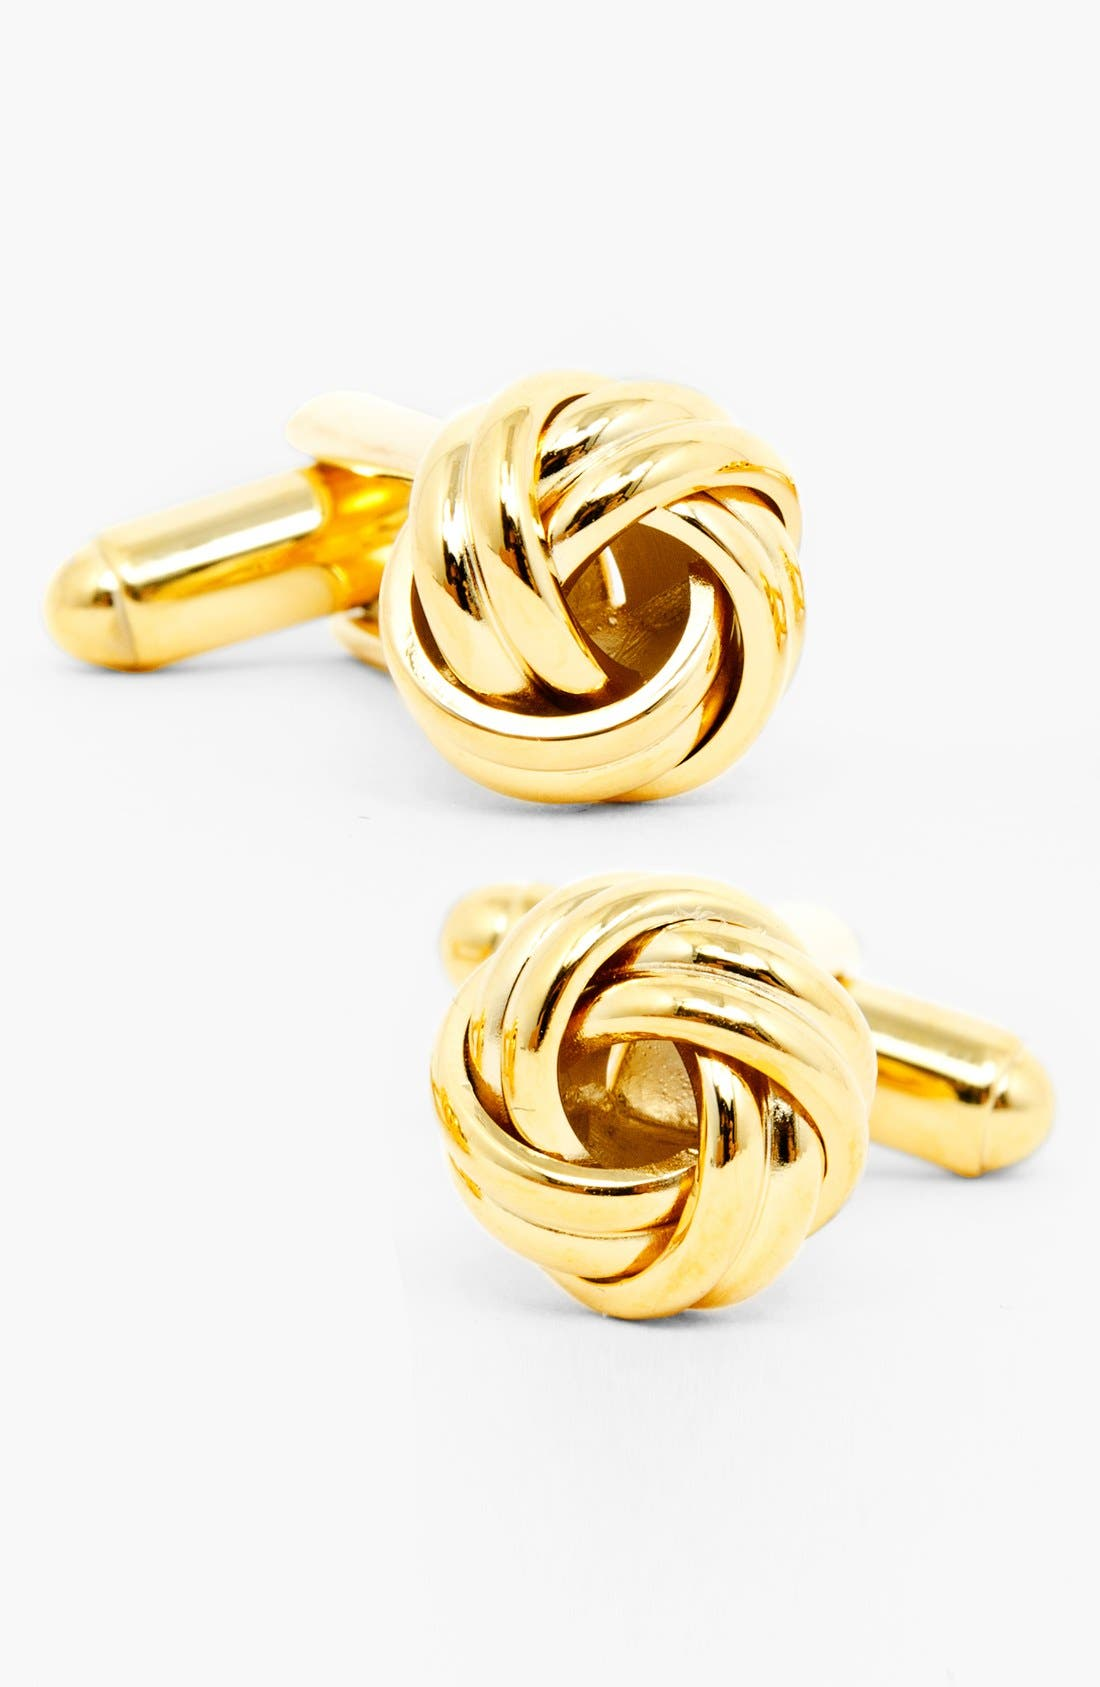 Ox and Bull Trading Co. Knot Cuff Links